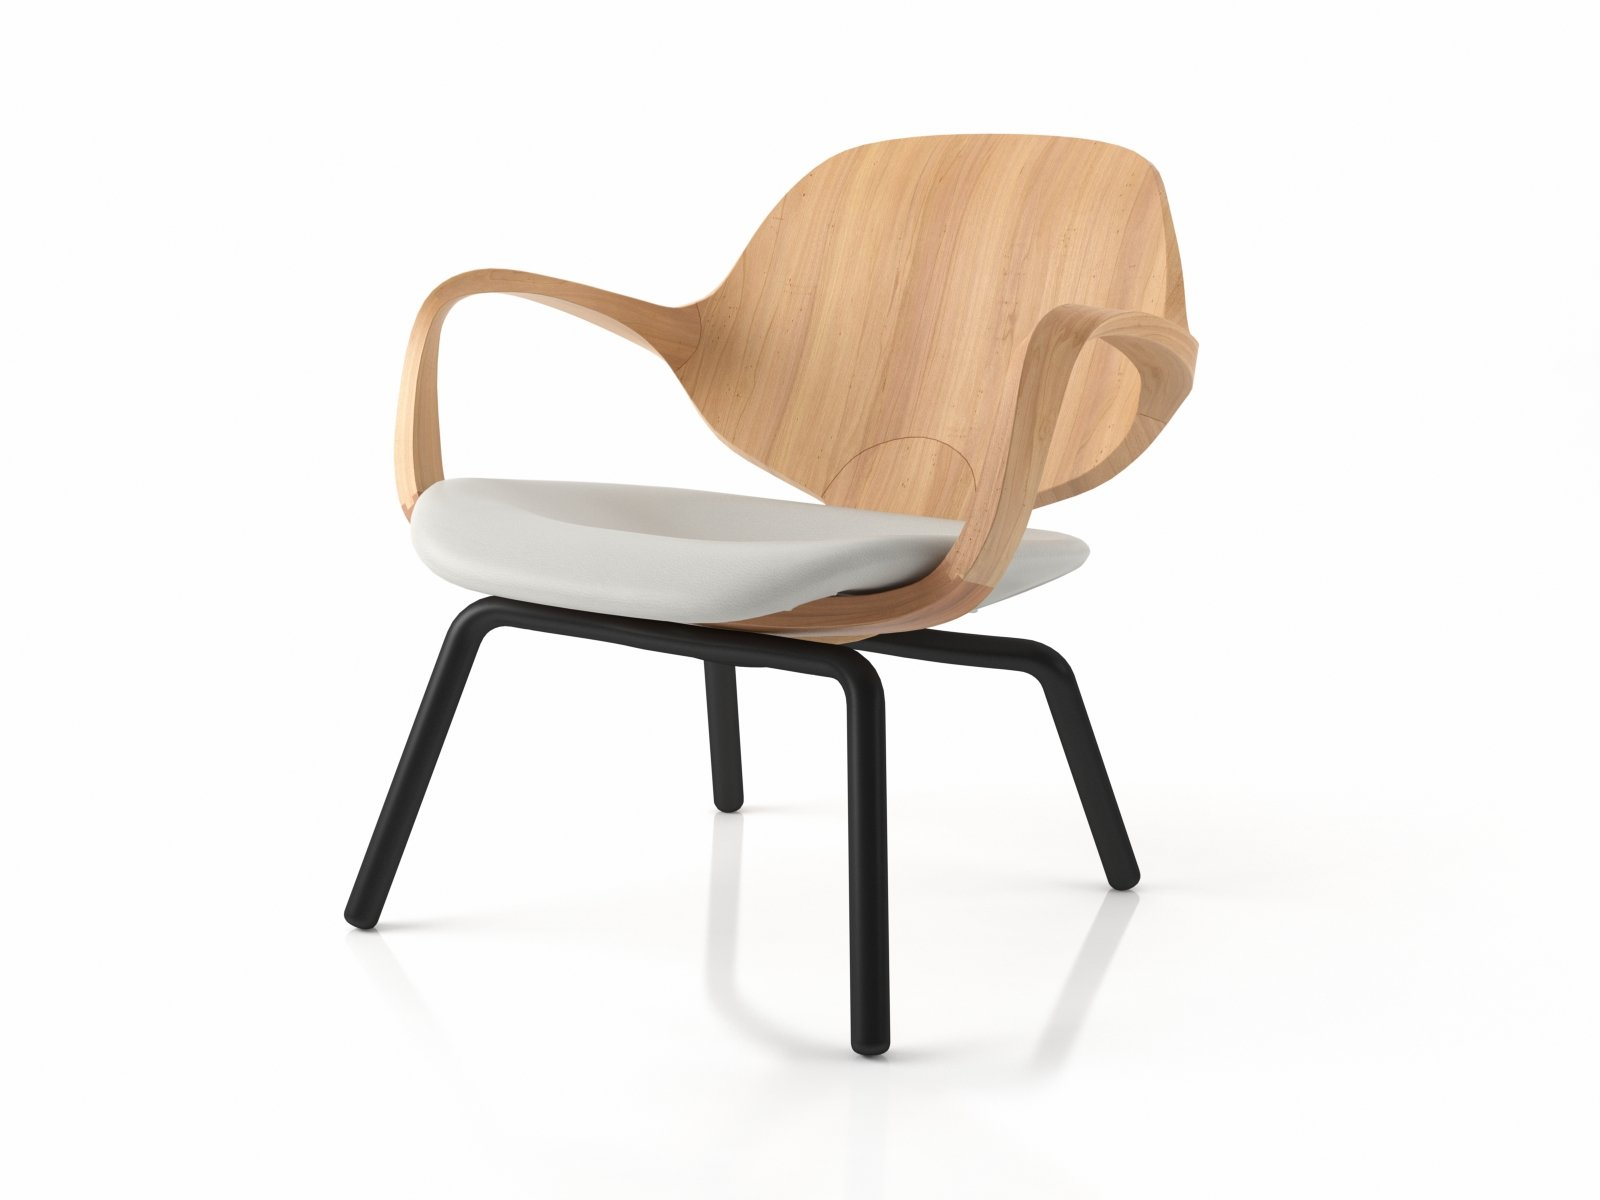 Clad armchair low 3d modell sollos for Sessel 3d dwg